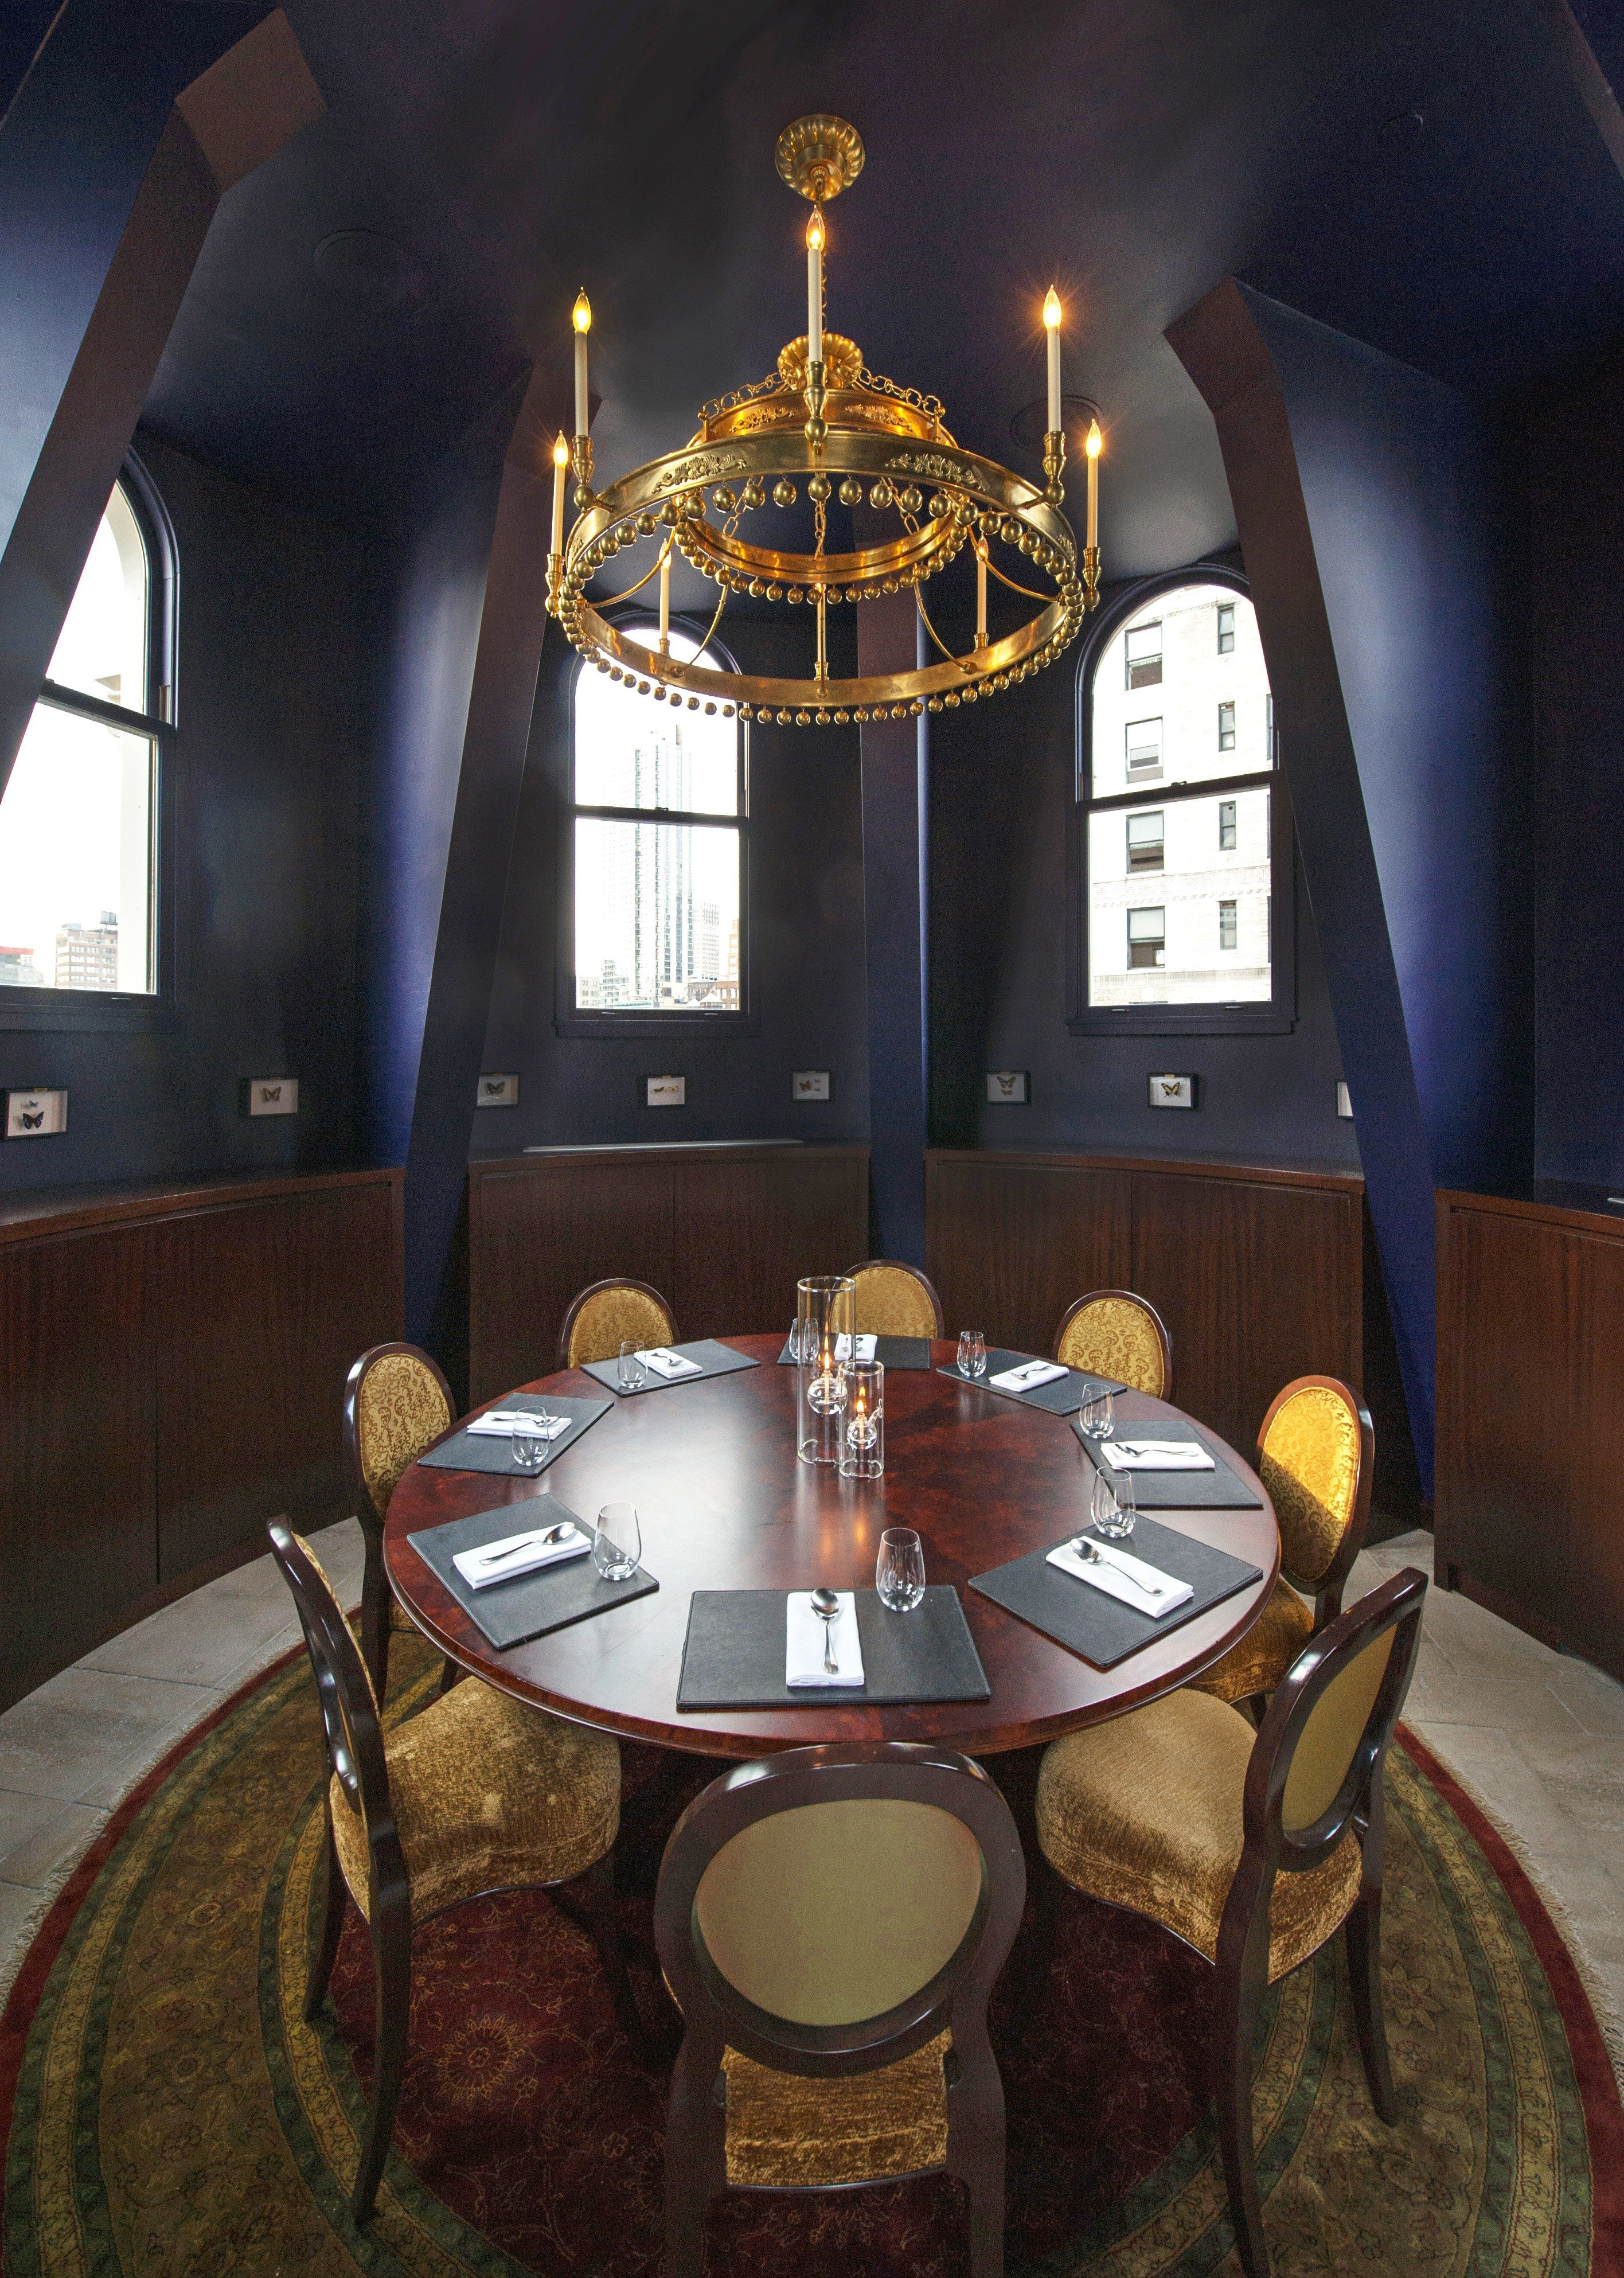 8 Impressive Private Dining Rooms In New York Restaurants  Nomad Simple Dallas Restaurants With Private Dining Rooms Decorating Design